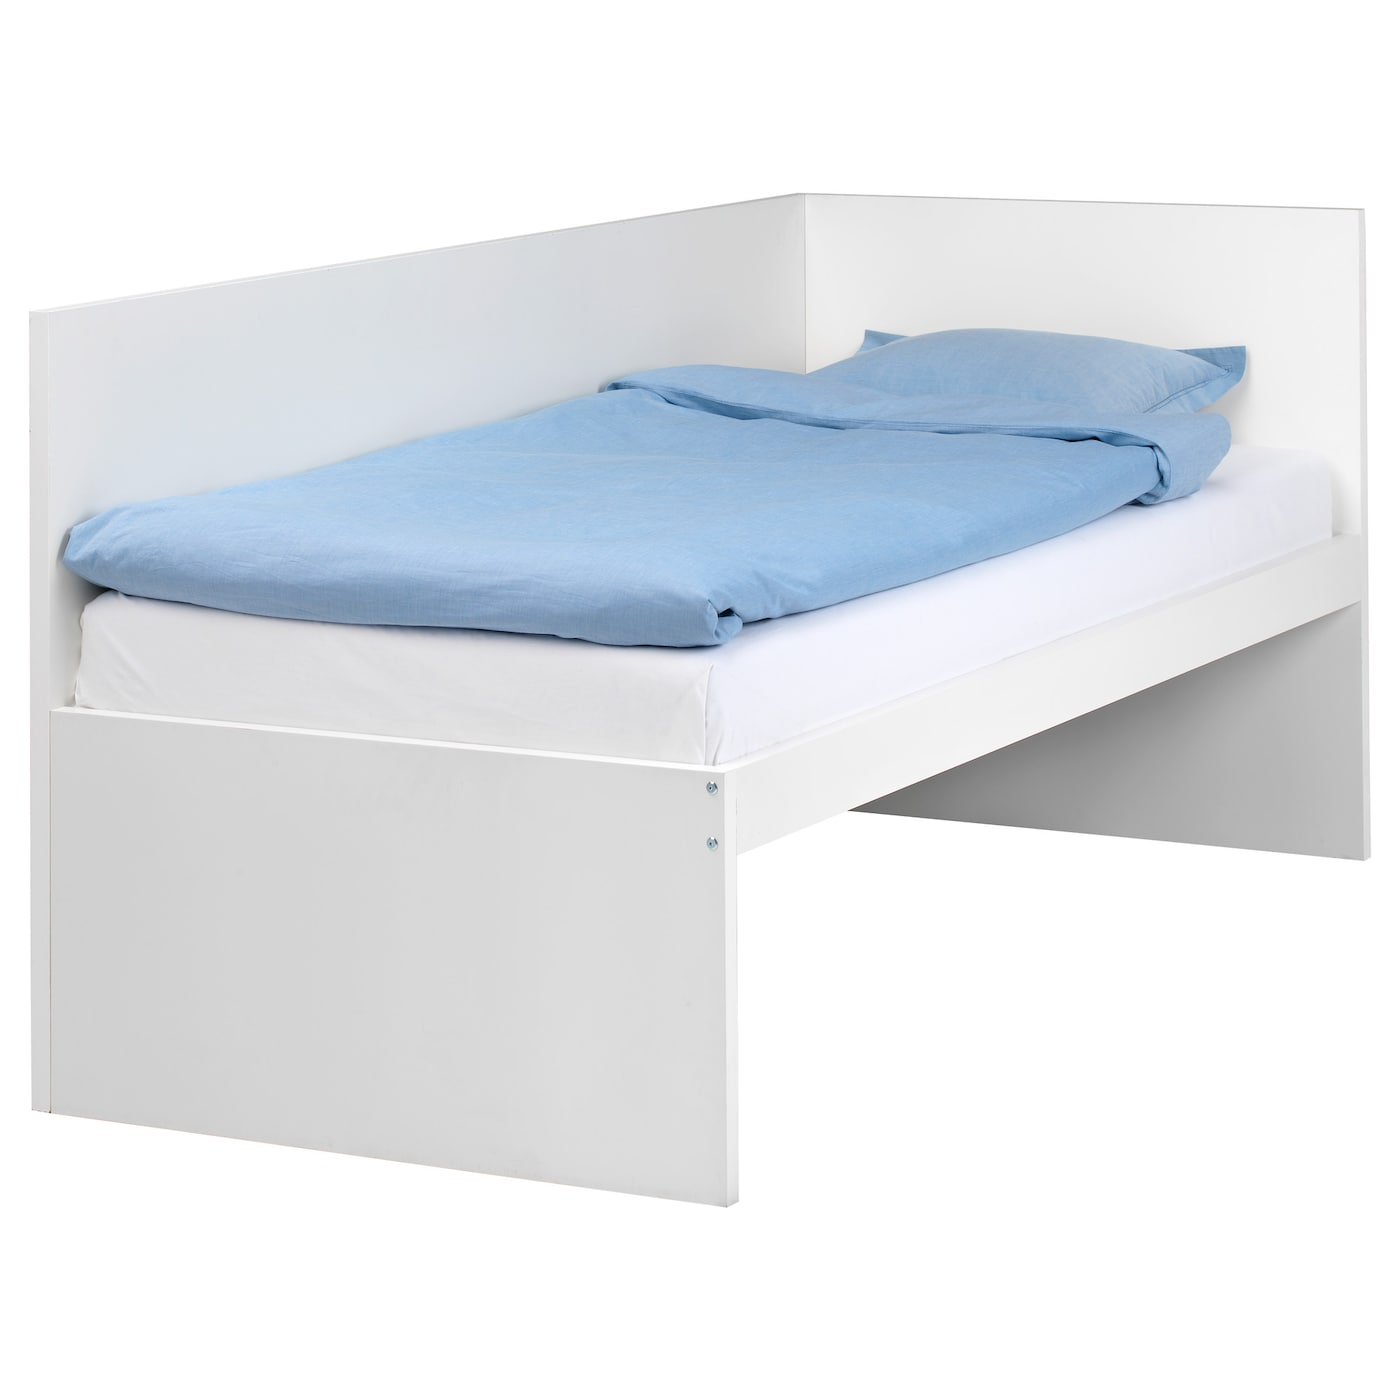 Single beds single bed frames ikea for Meuble japonais futon